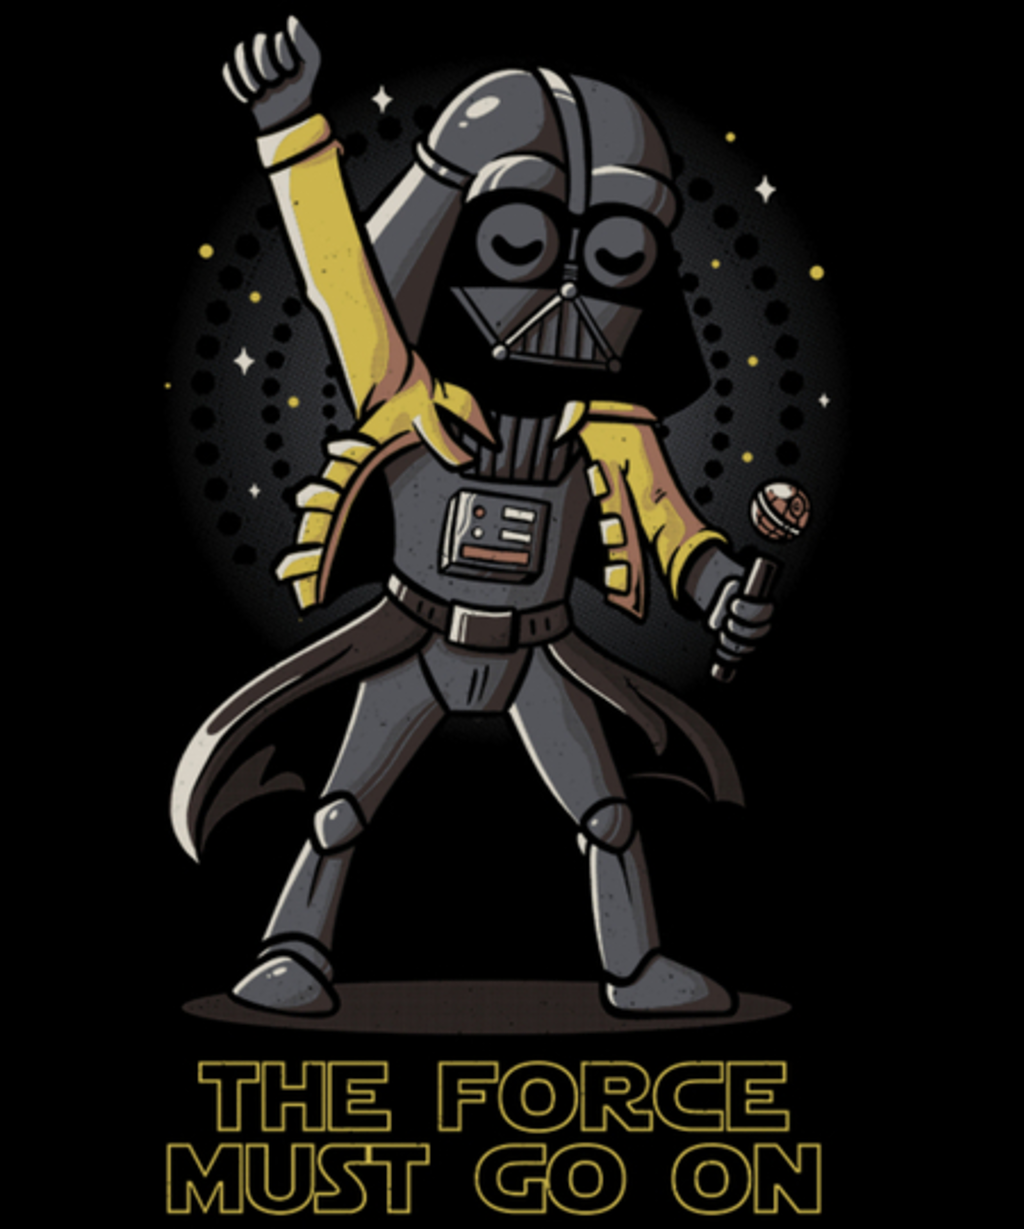 Qwertee: The Force Must Go On